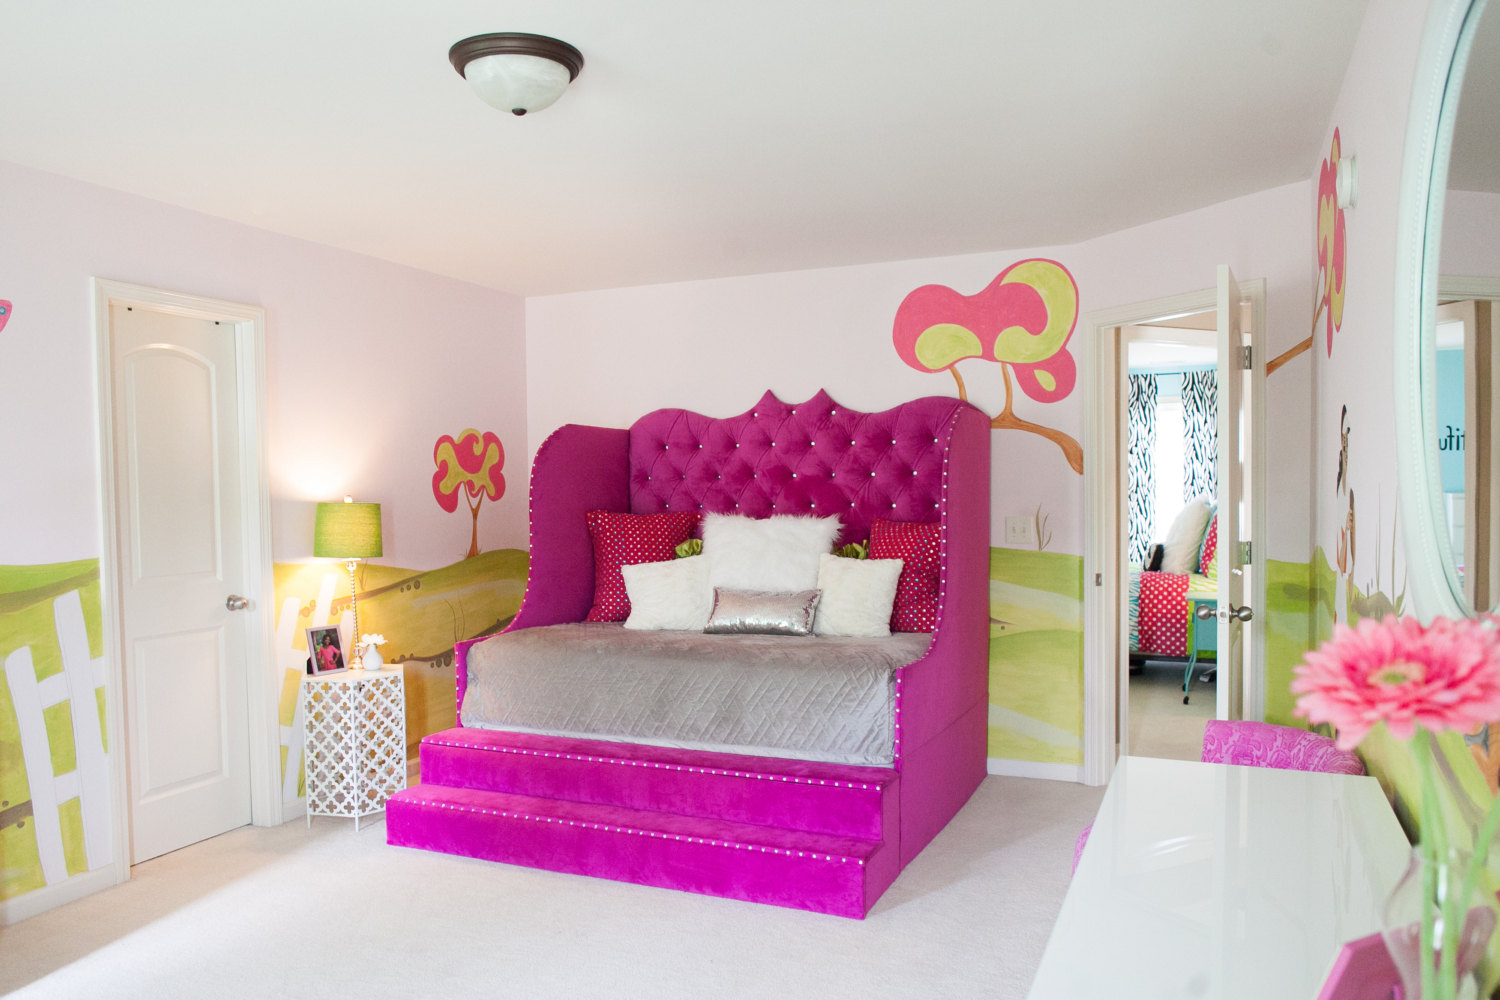 wondrous pink queen daybed and area rugs plus white canadian door